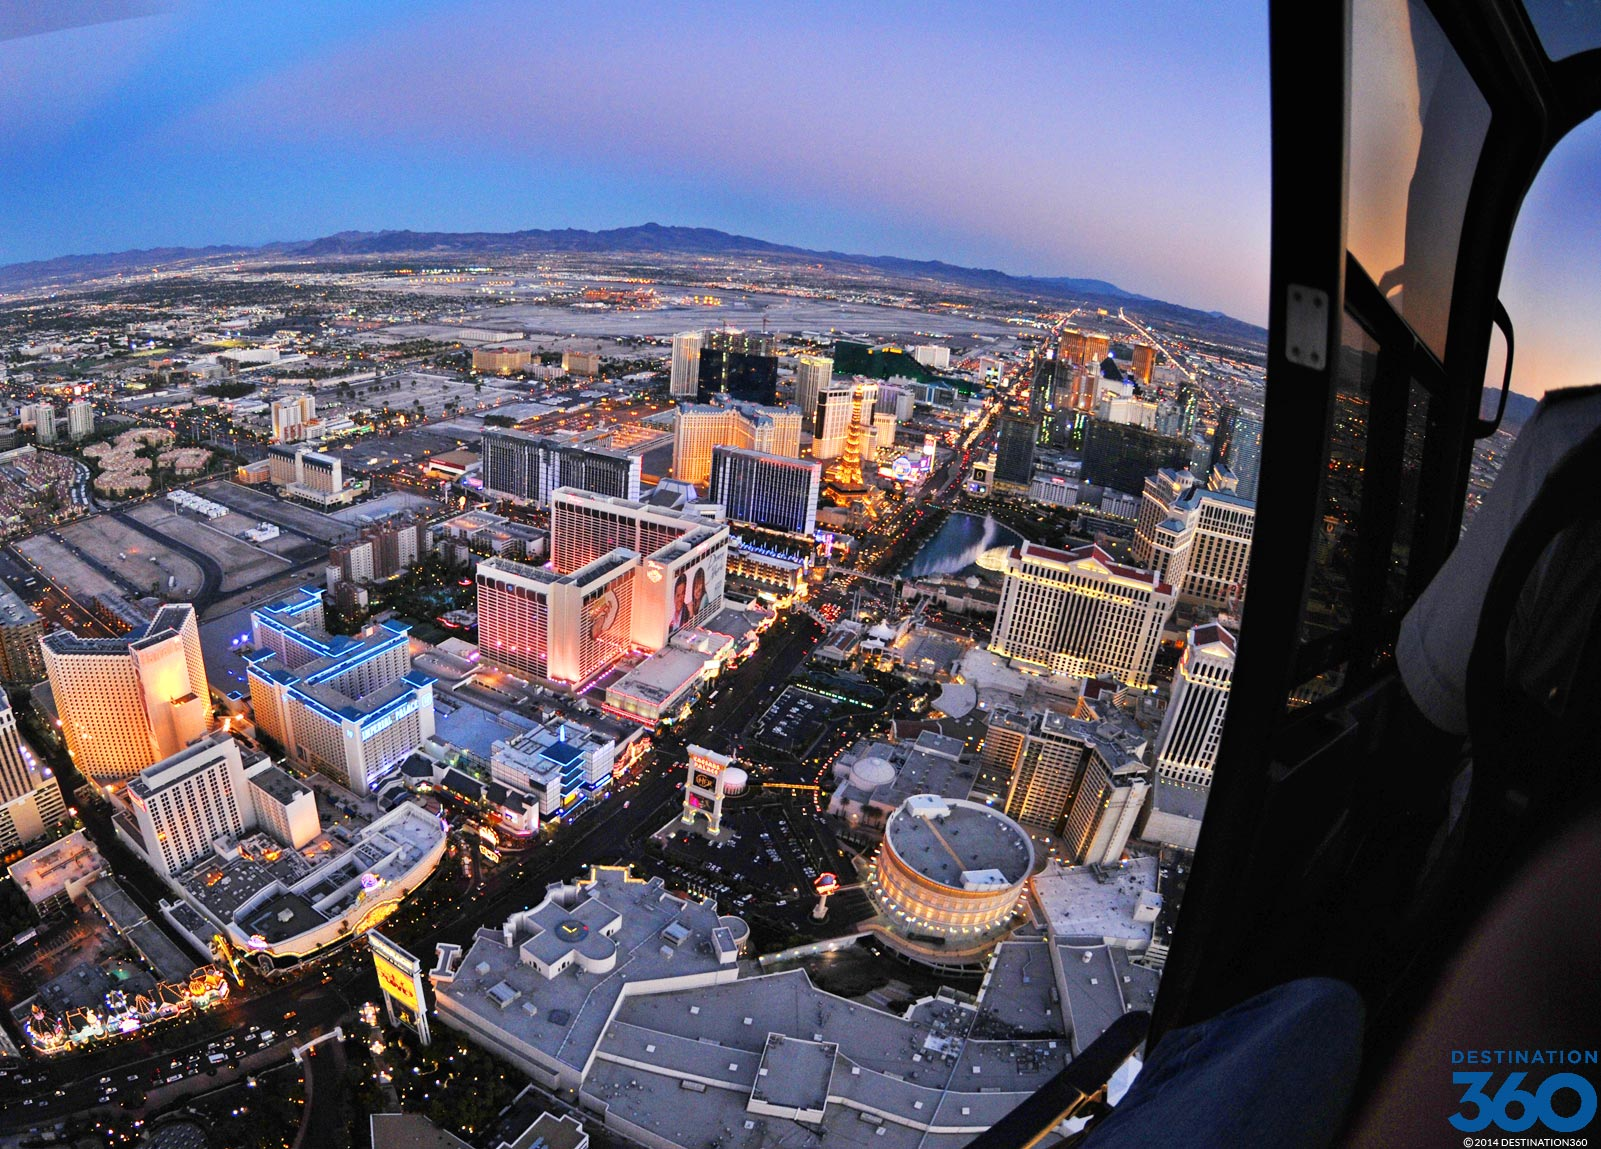 Las Vegas Helicopter Tour Las Vegas Helicopter Tours Helicopter Tour In Las